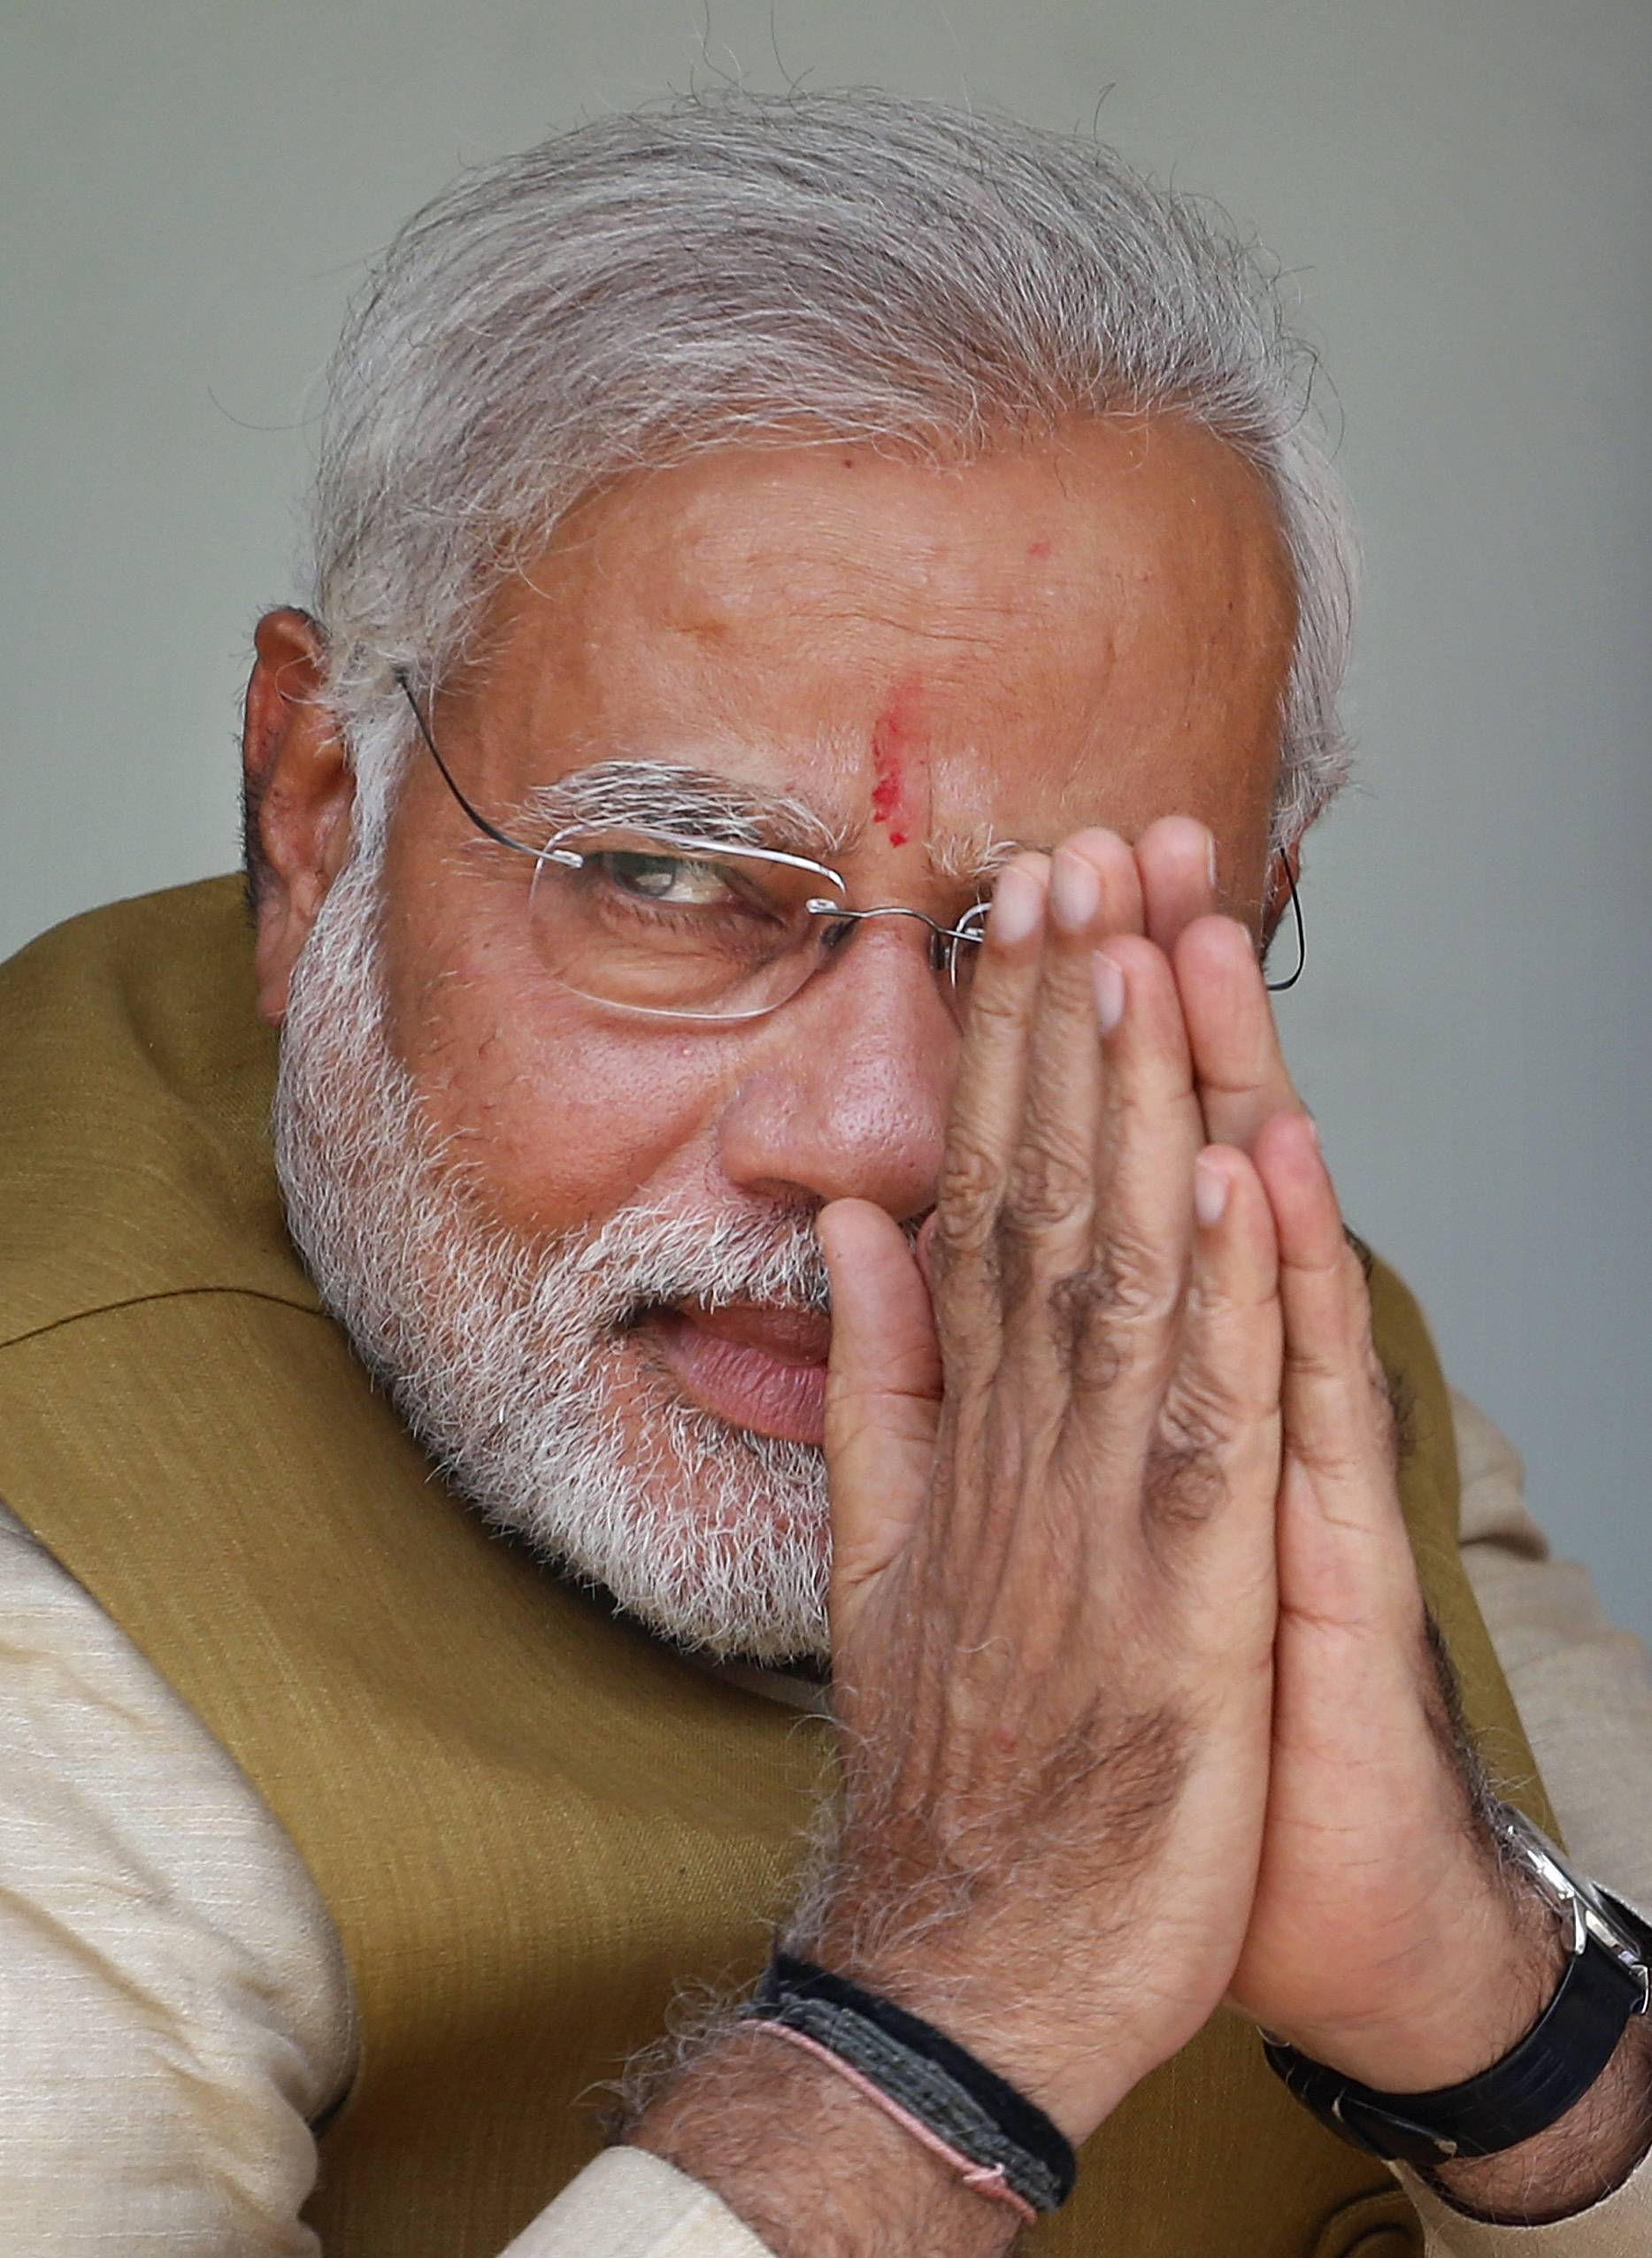 Opposition Bharatiya Janata Party (BJP) leader and India's next prime minister Narendra Modi.